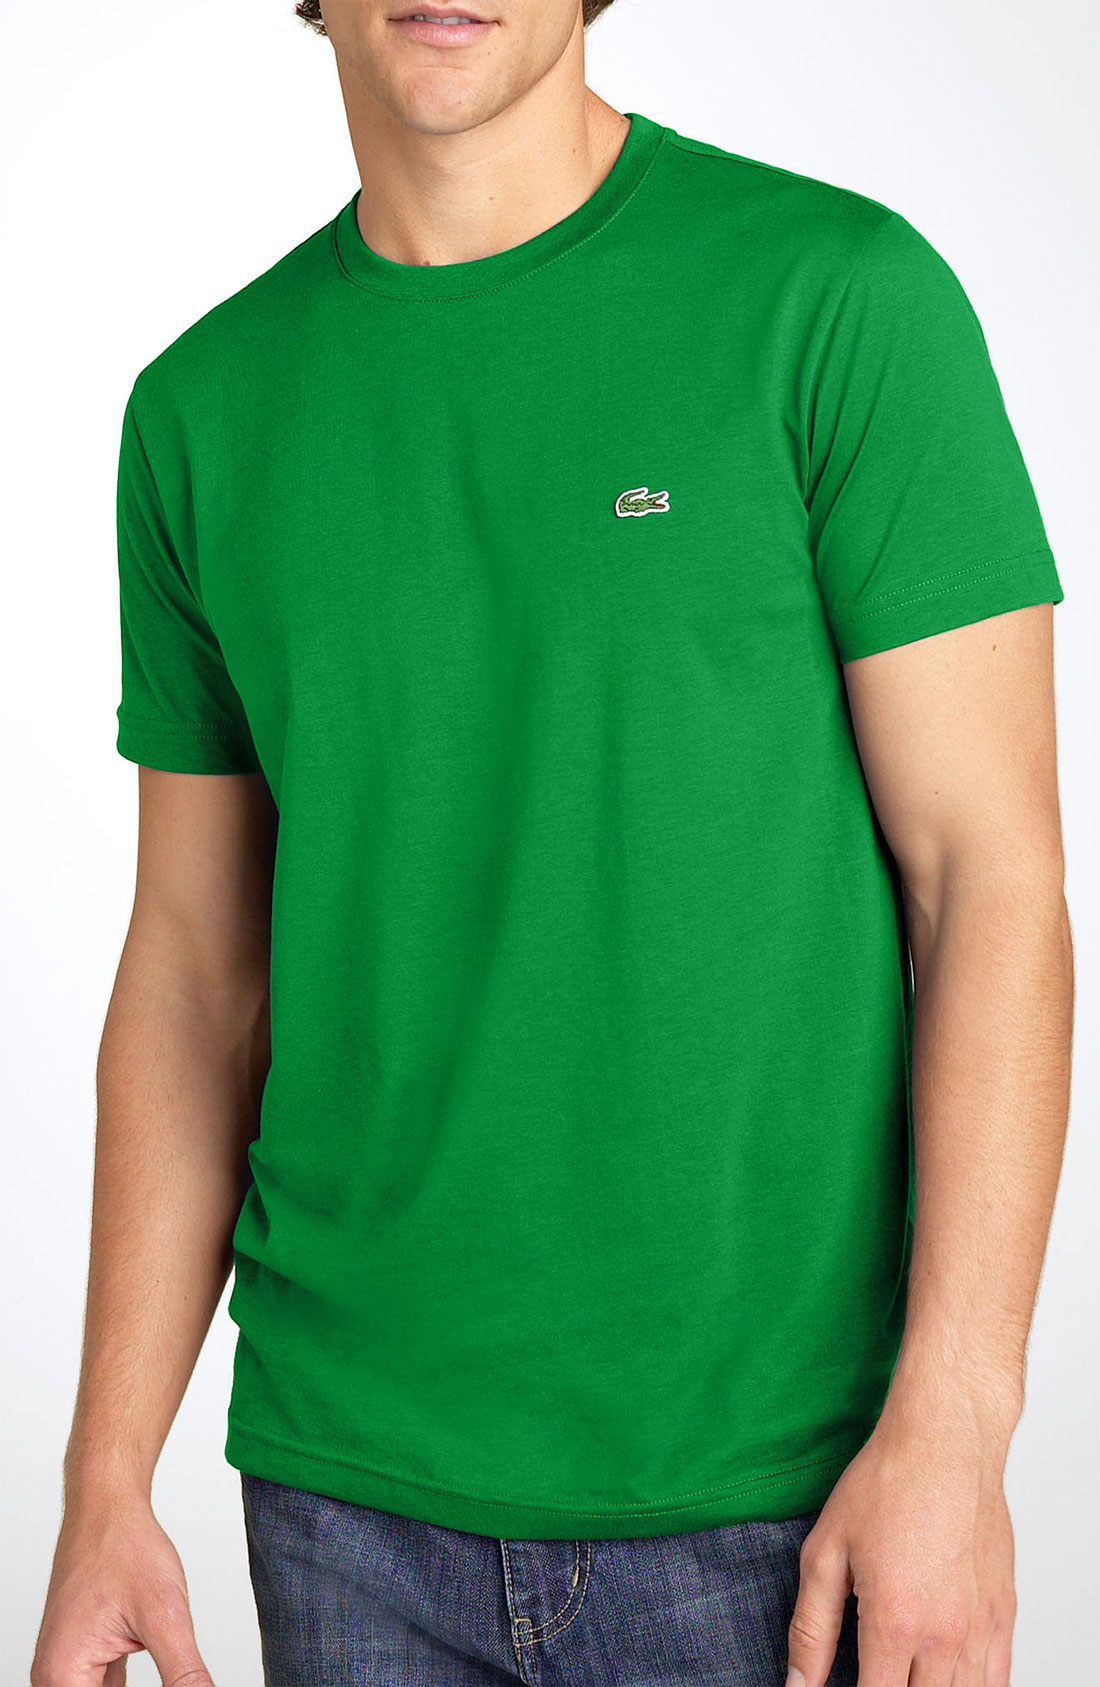 lacoste croc logo pima cotton crewneck tshirt in green for. Black Bedroom Furniture Sets. Home Design Ideas